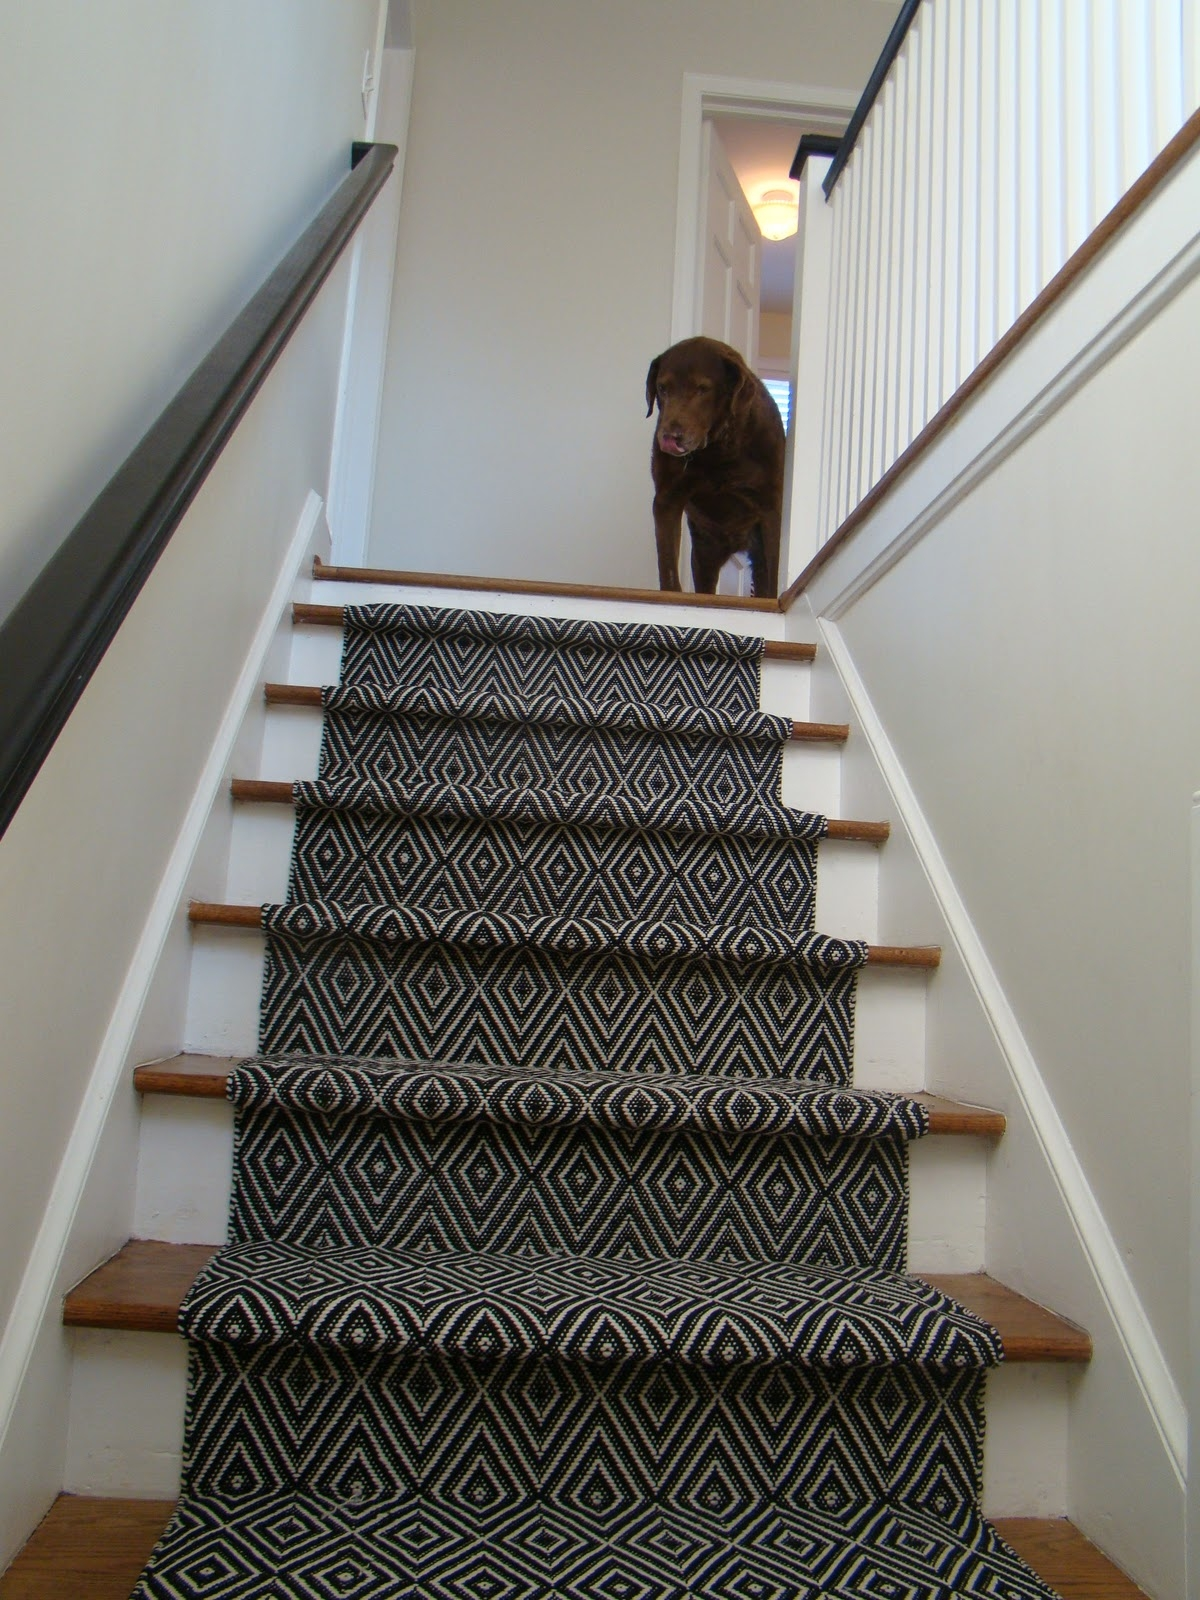 Stair Runners And Rods Stair Runners As The Way To Give Within Stair Tread Carpet Rods (#19 of 20)